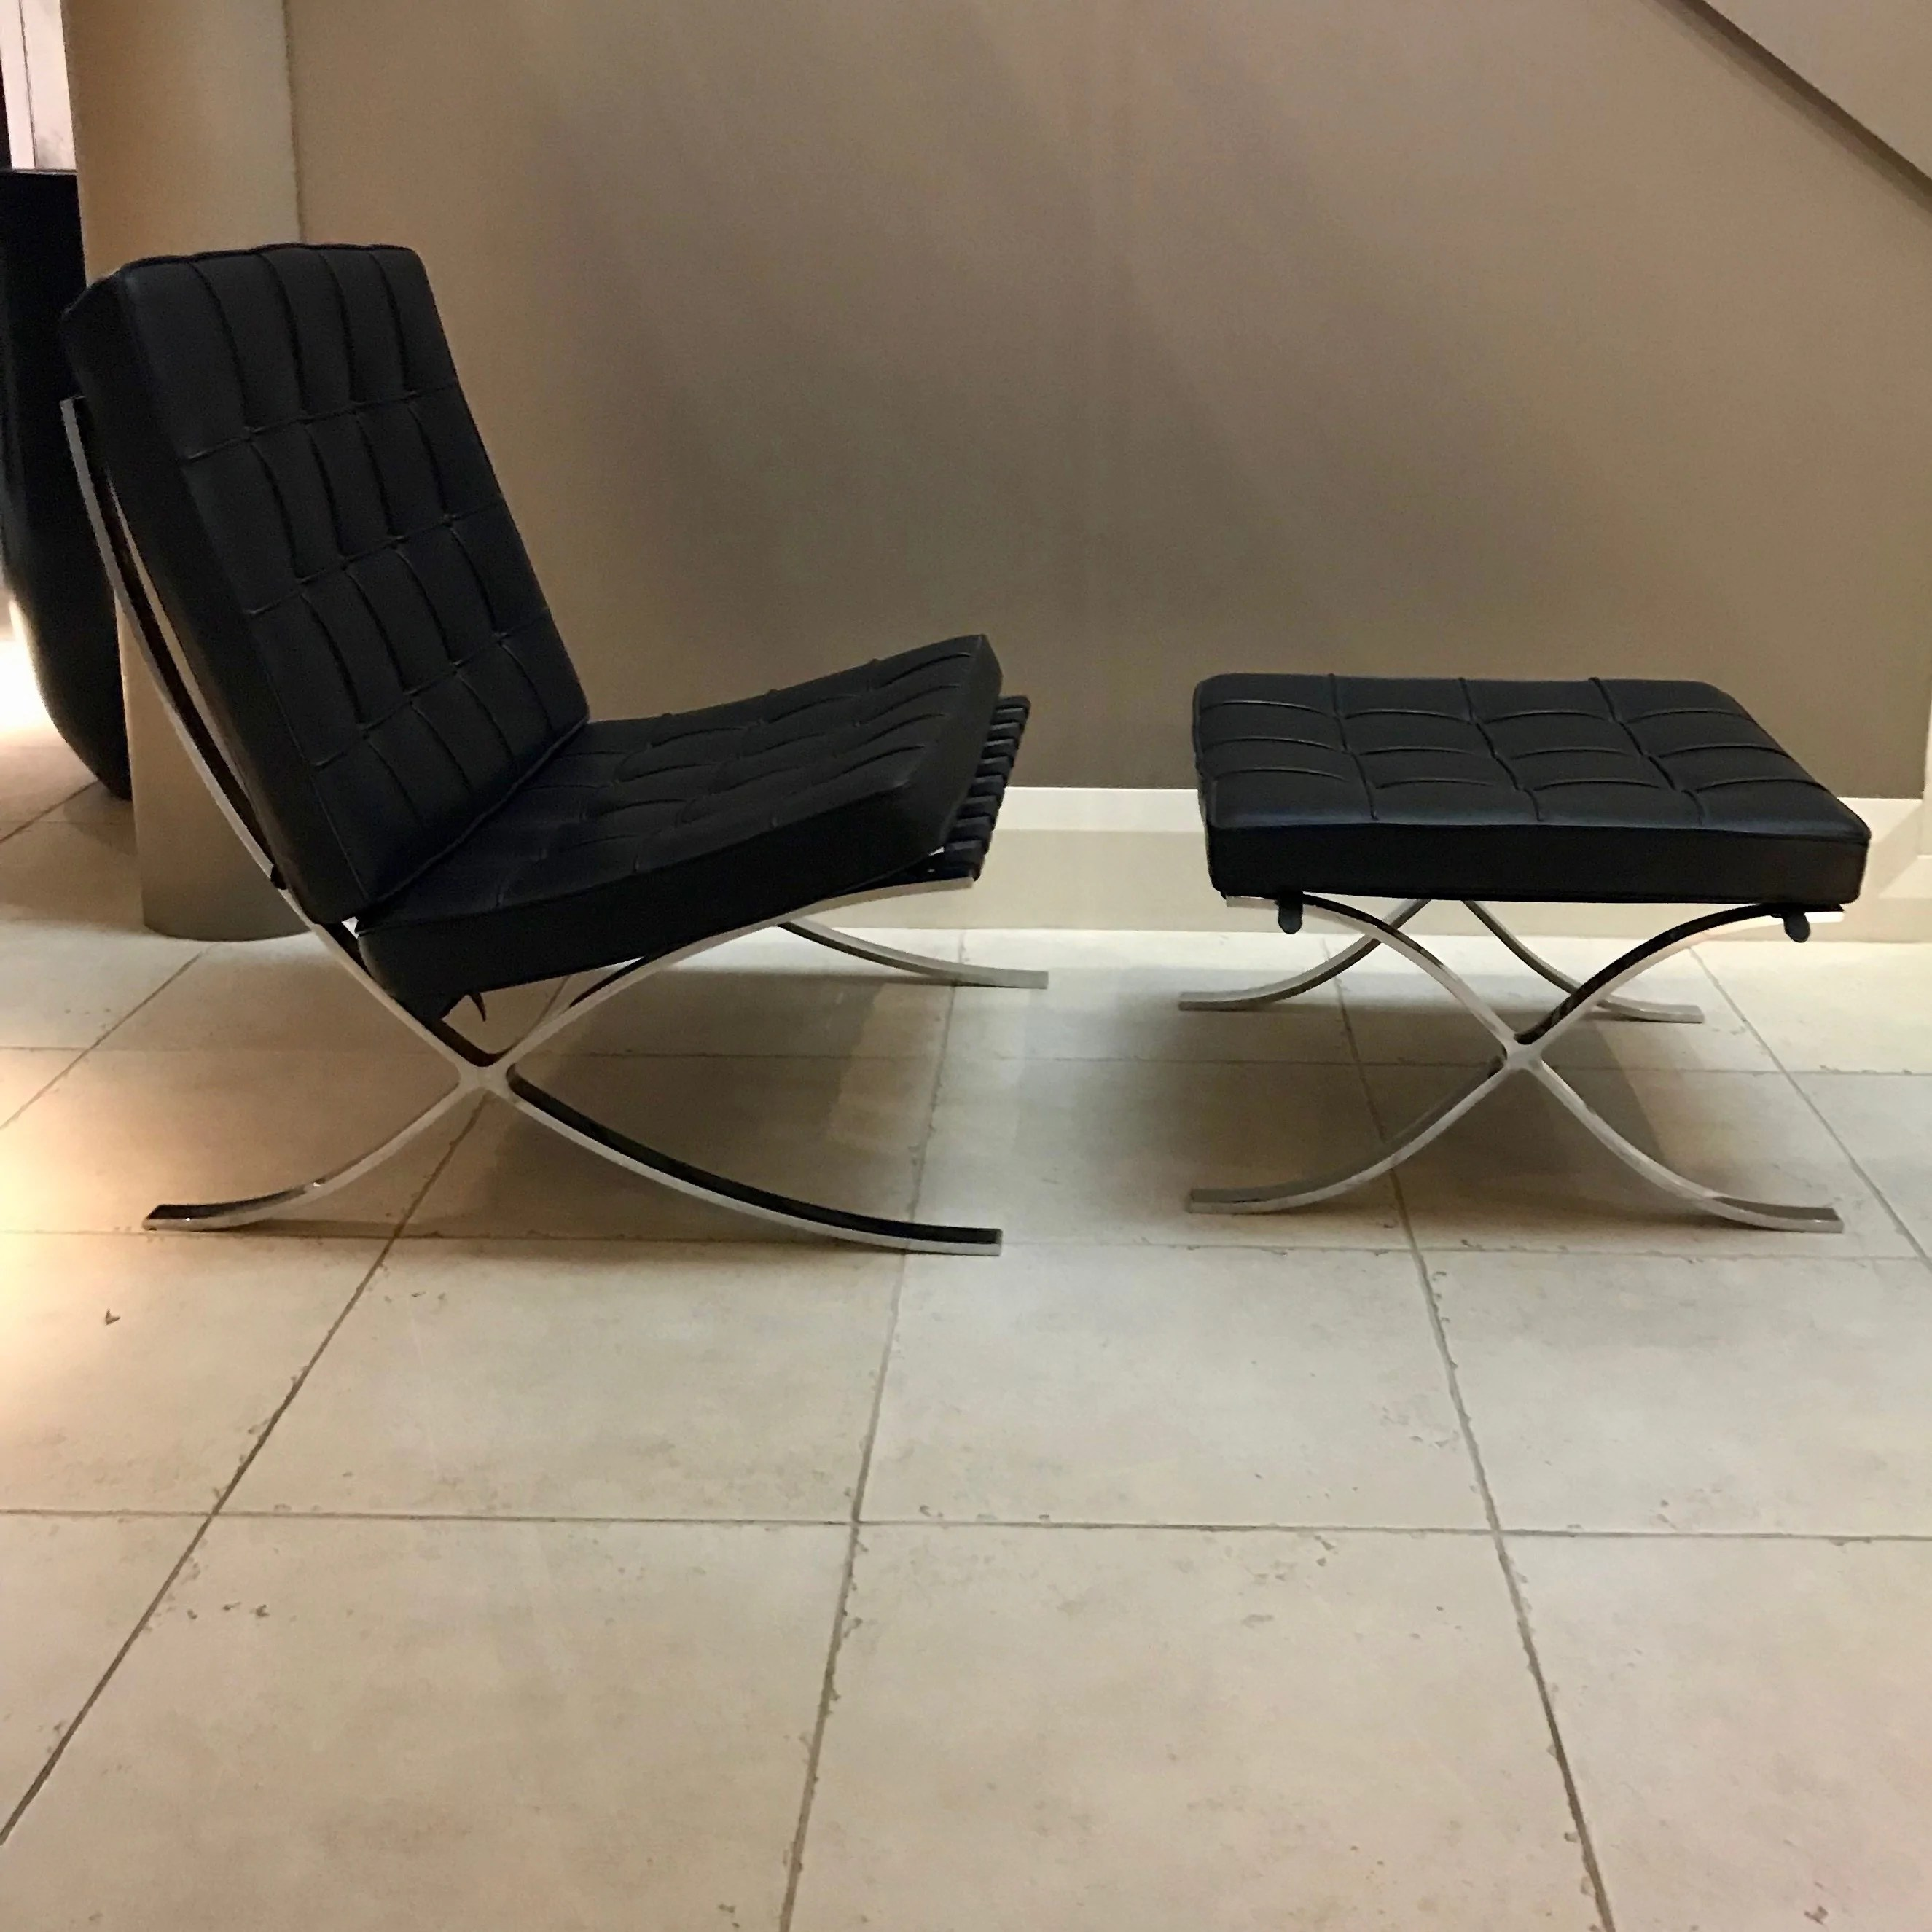 mies van der rohe barcelona chair broda with footstool by ludwig for knoll img 0682 c39223a9 416d 4f0d 9fe2 556dfa693038 jpg v 1539753725